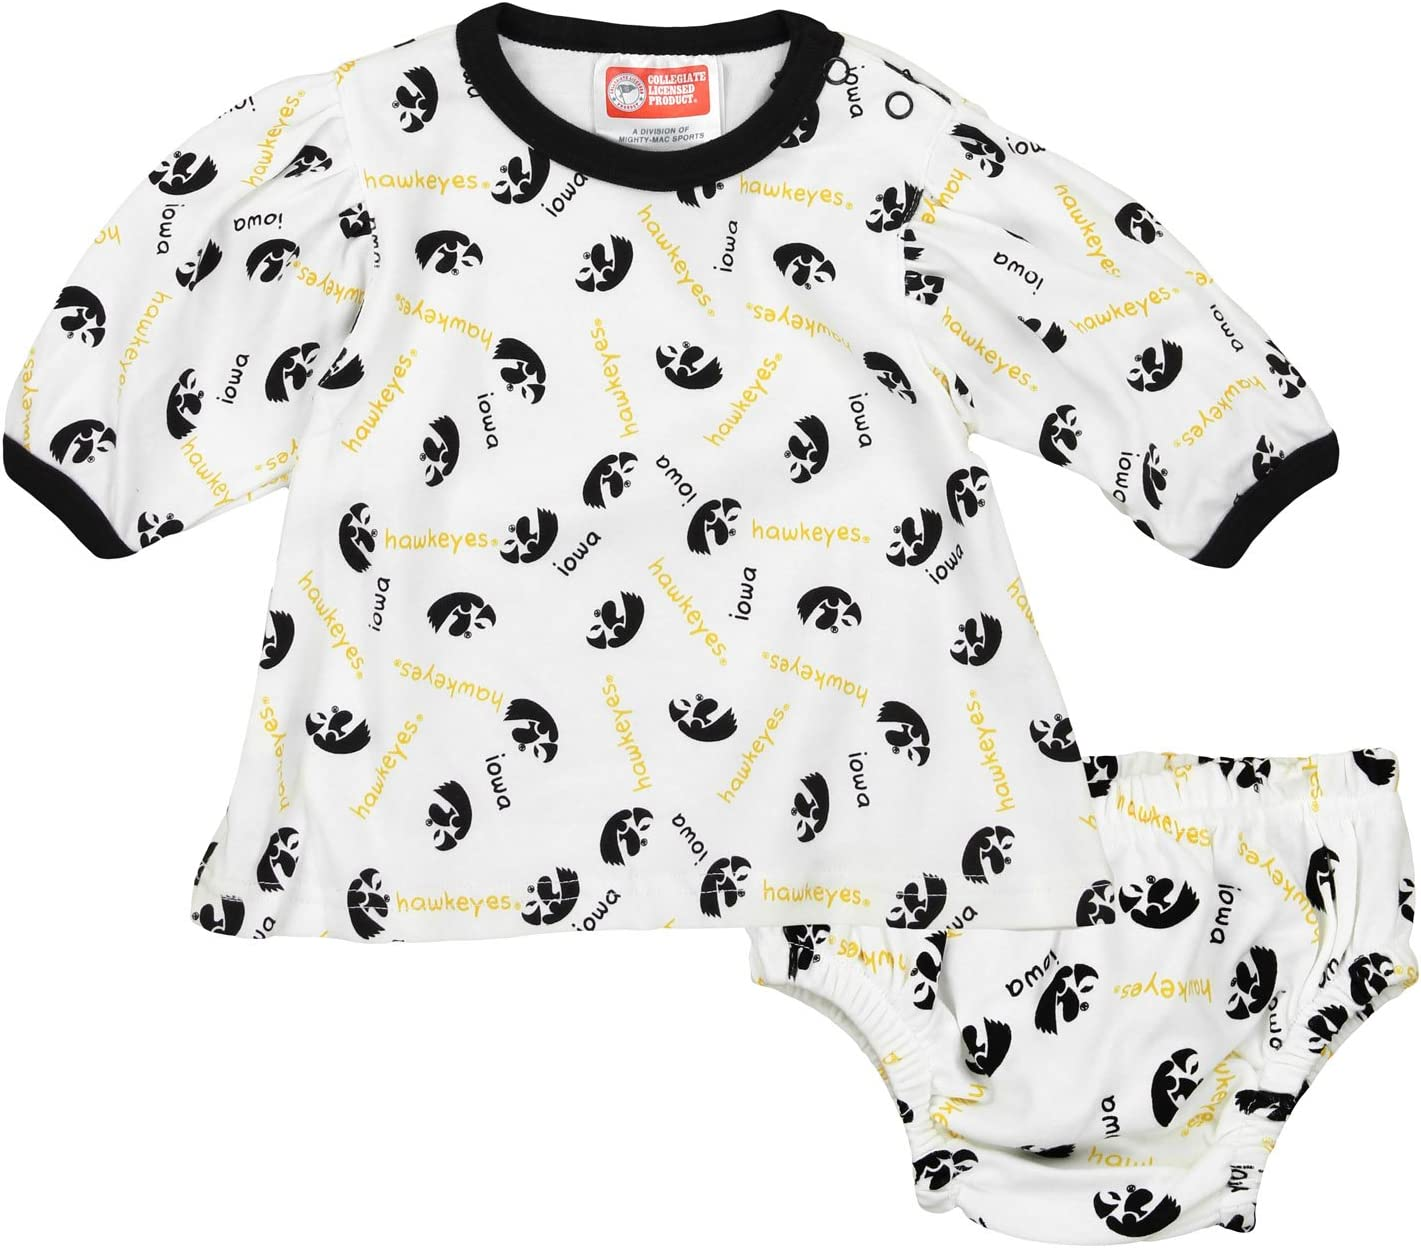 Iowa Hawkeyes NCAA Baby Girls Infant Top and Diaper Cover Set, White